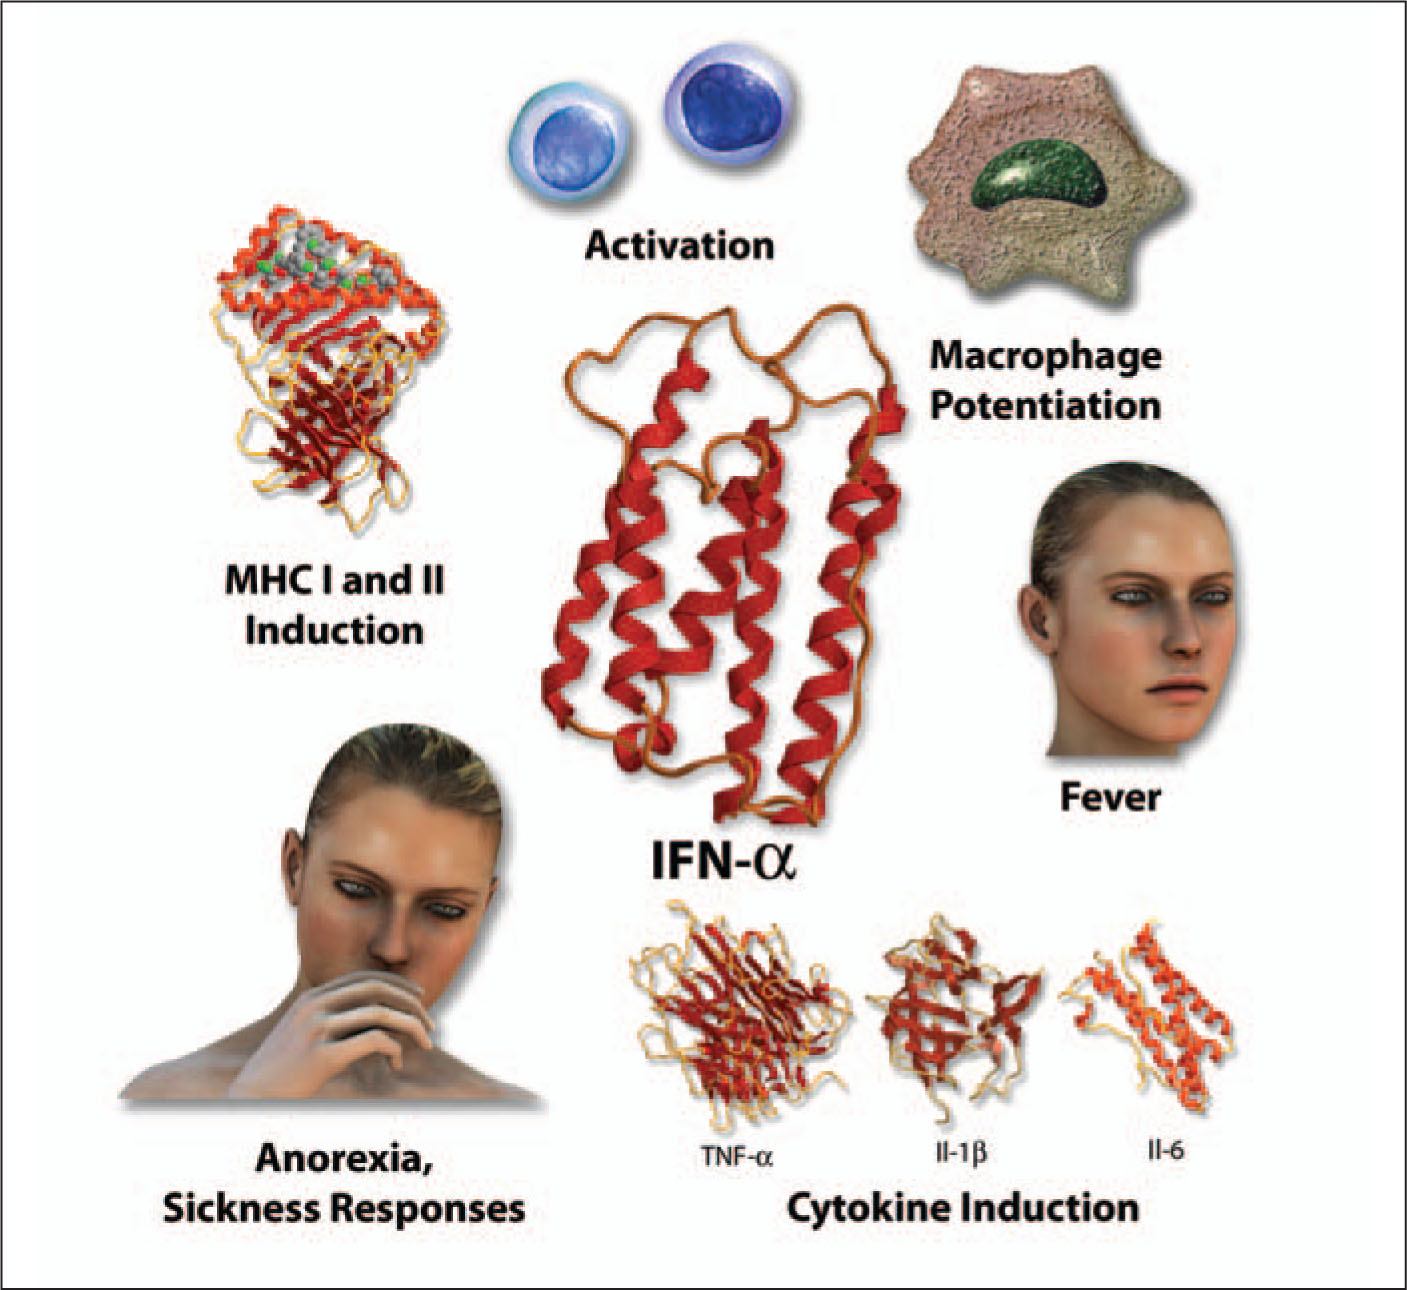 Interferon Alpha (IFN-alpha) Is a 189 Amino Acid Protein that Is Made Primarily by Plasmacytoid Dendritic Cells and Mononuclear Phagocytes. Viral Nucleic Acids Are the Strongest Stimulator of IFN-alpha Production. IFN-alpha Produces Fever and Other Sickness Responses. It also Induces Production of MHC I and II Molecules, Potentiates Macrophages, Stimulates the Development of Helper T Cells Along the TH1 Pathway, and Induces the Production of Inflammatory Cytokines (TNF-alpha, IL-1-Beta, and IL-6). A Note from the Editors: All Illustrations in This Article Have Been Created by George I. Viamontes, MD, PhD, for Specific Use in This Issue of Psychiatric Annals.